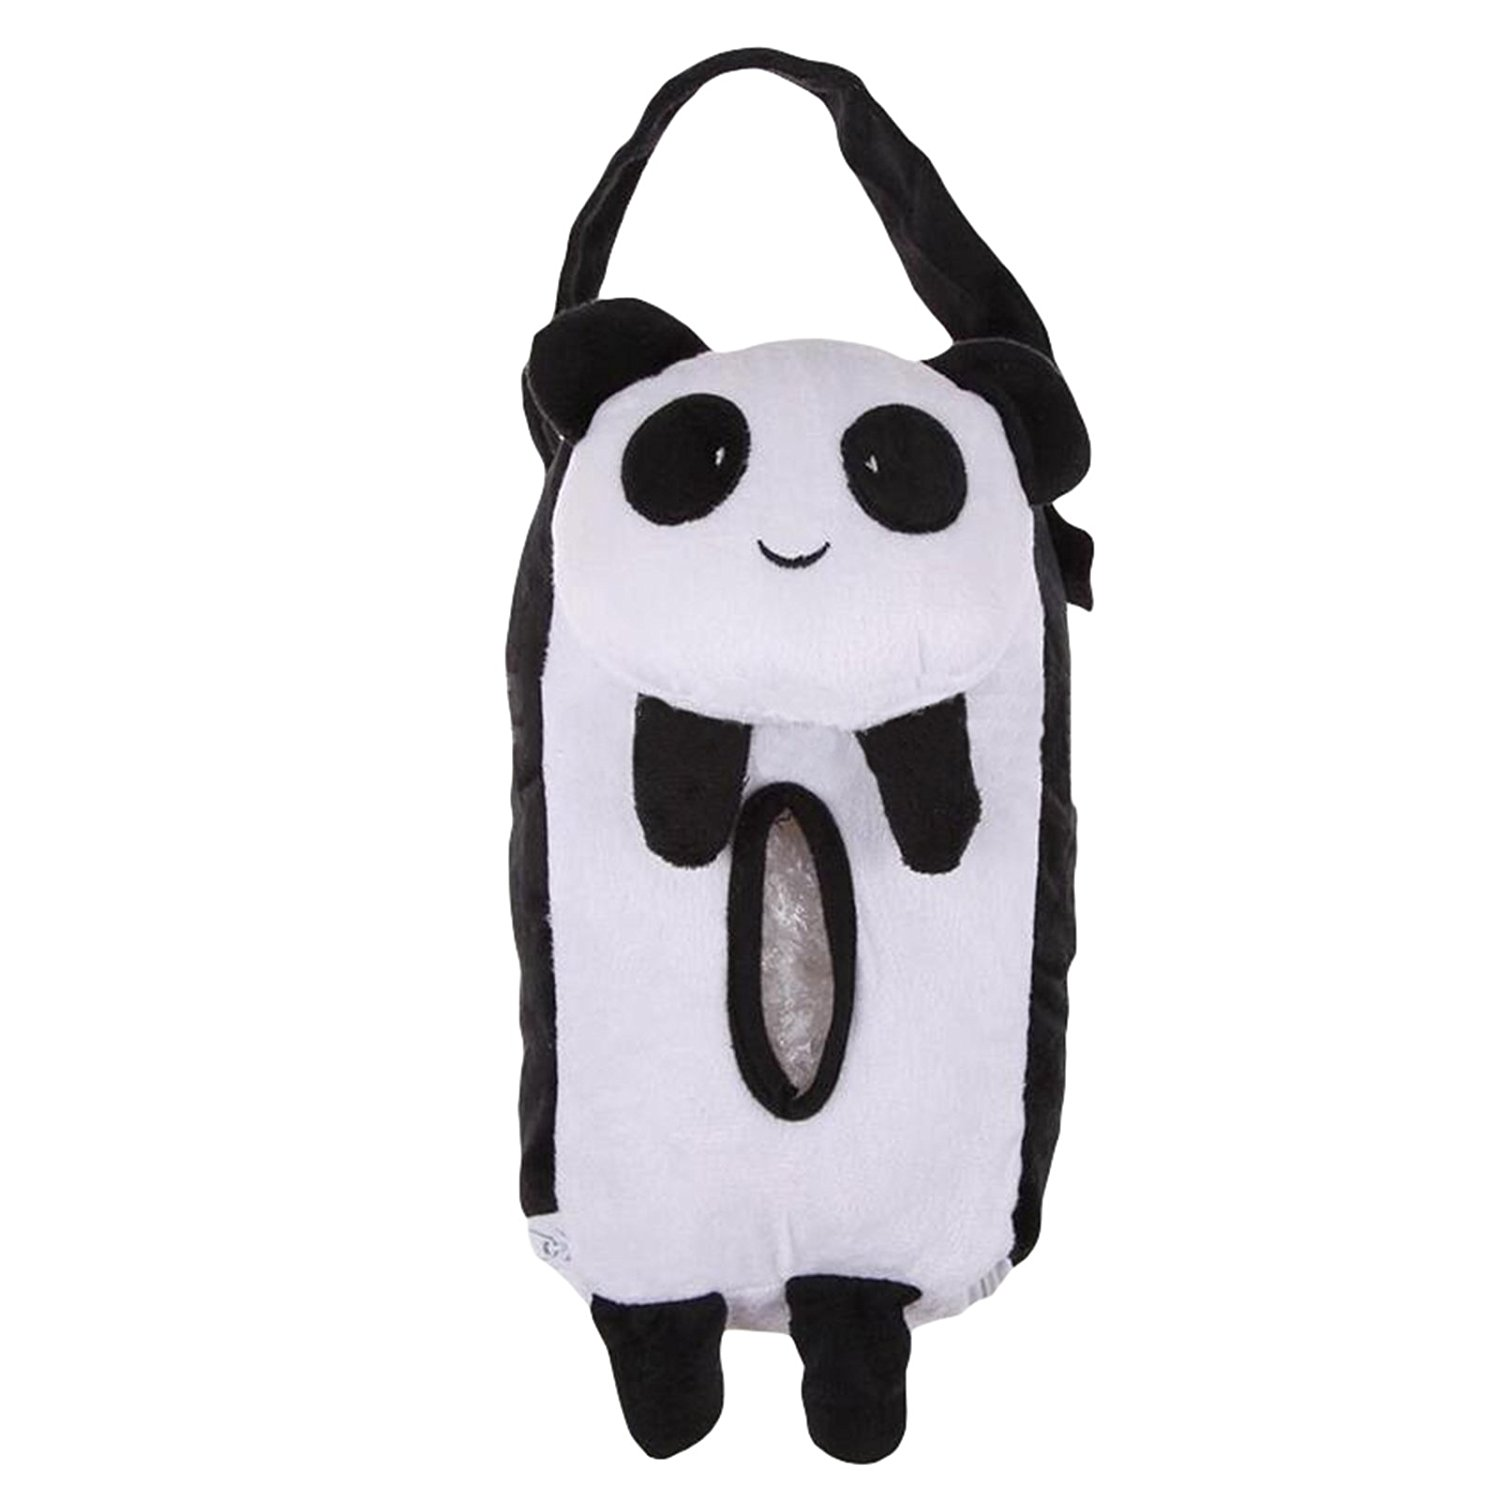 LADEY Cute Soft Portable Hanging Car Tissue Box Cover Car Accessories Home Office Car Rectangle Animal Tissue Box Cover Holder Paper Box Bathroom Storage Hot(Panda)